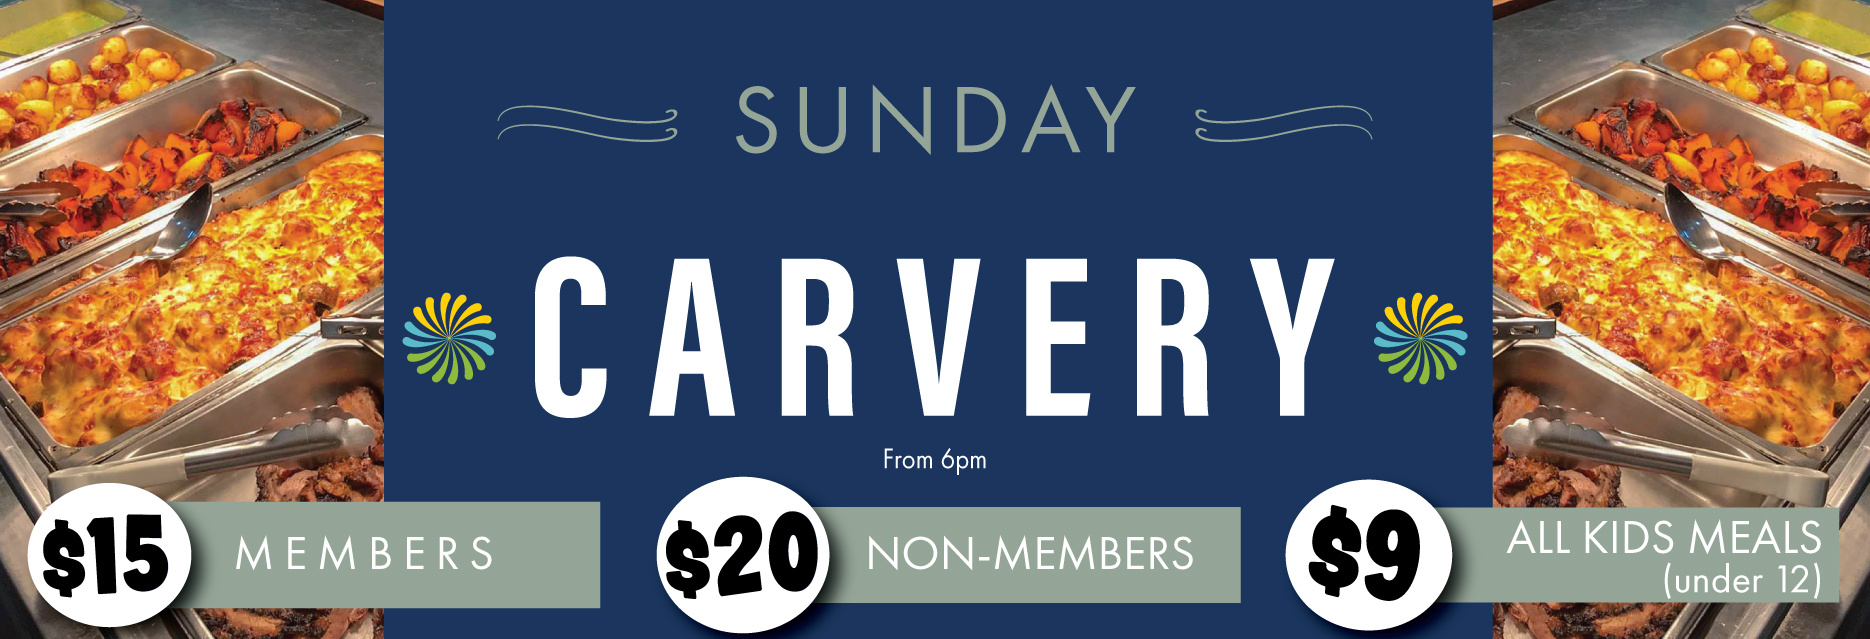 Sunday-Carvery-BANNER